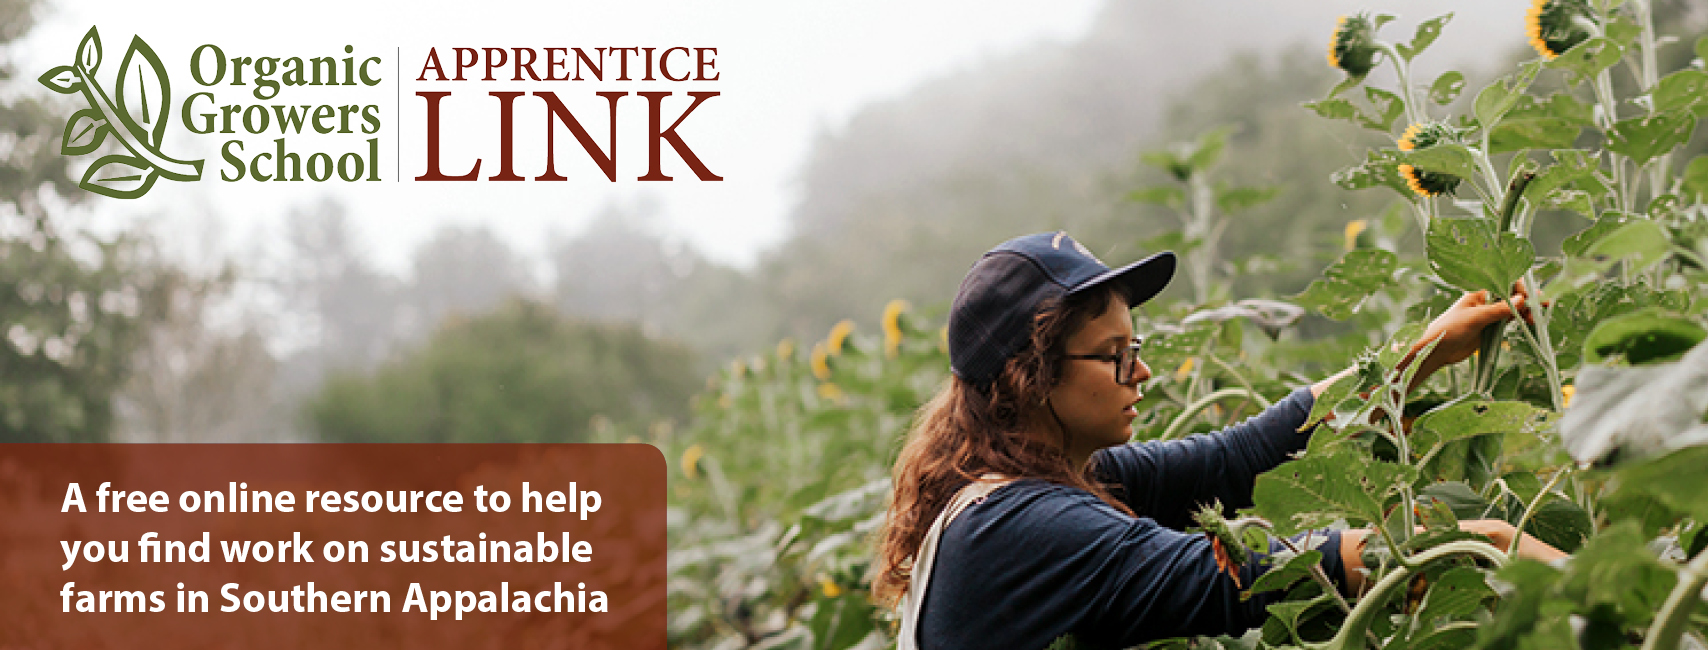 Organic Growers School: Apprentice Link. A free online resource to help you find work on sustainable farms in Southern Appalachia